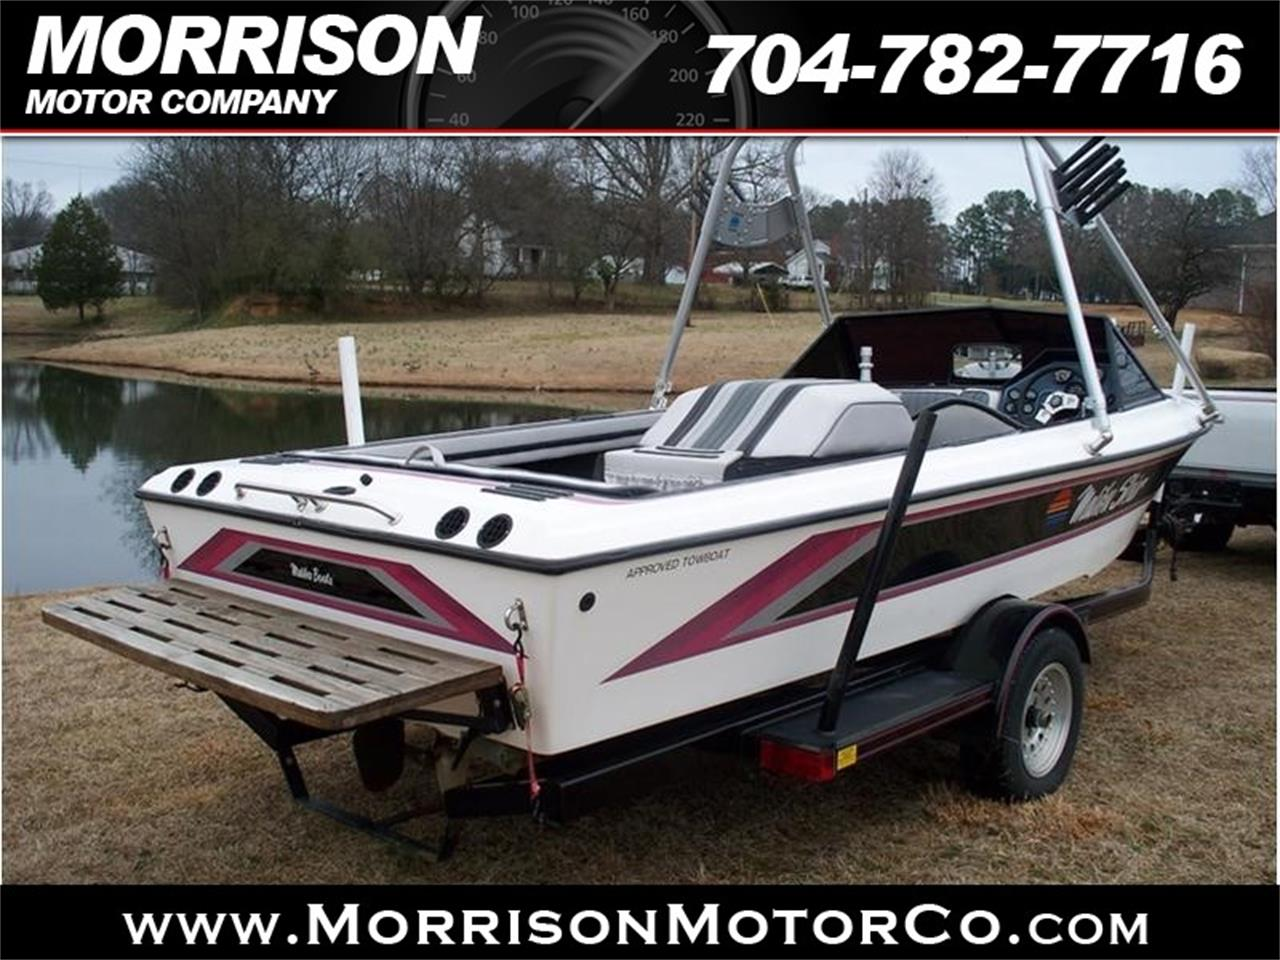 1991 Miscellaneous Boat for sale in Concord, NC – photo 15